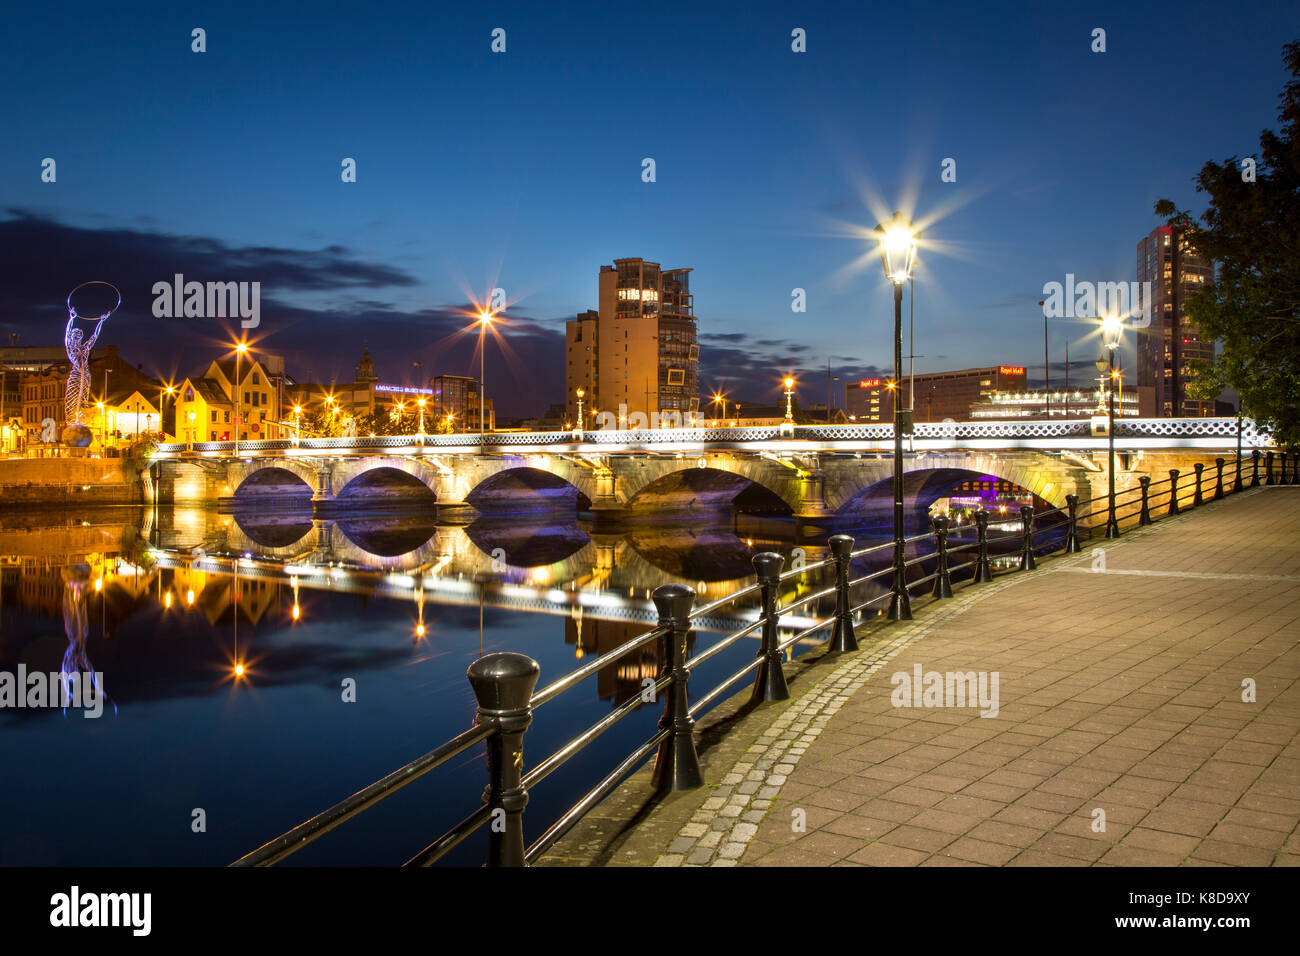 Beacon of Hope statue, Lagan Bridge and town of Belfast, County Antrim, Northern Ireland, UK - Stock Image